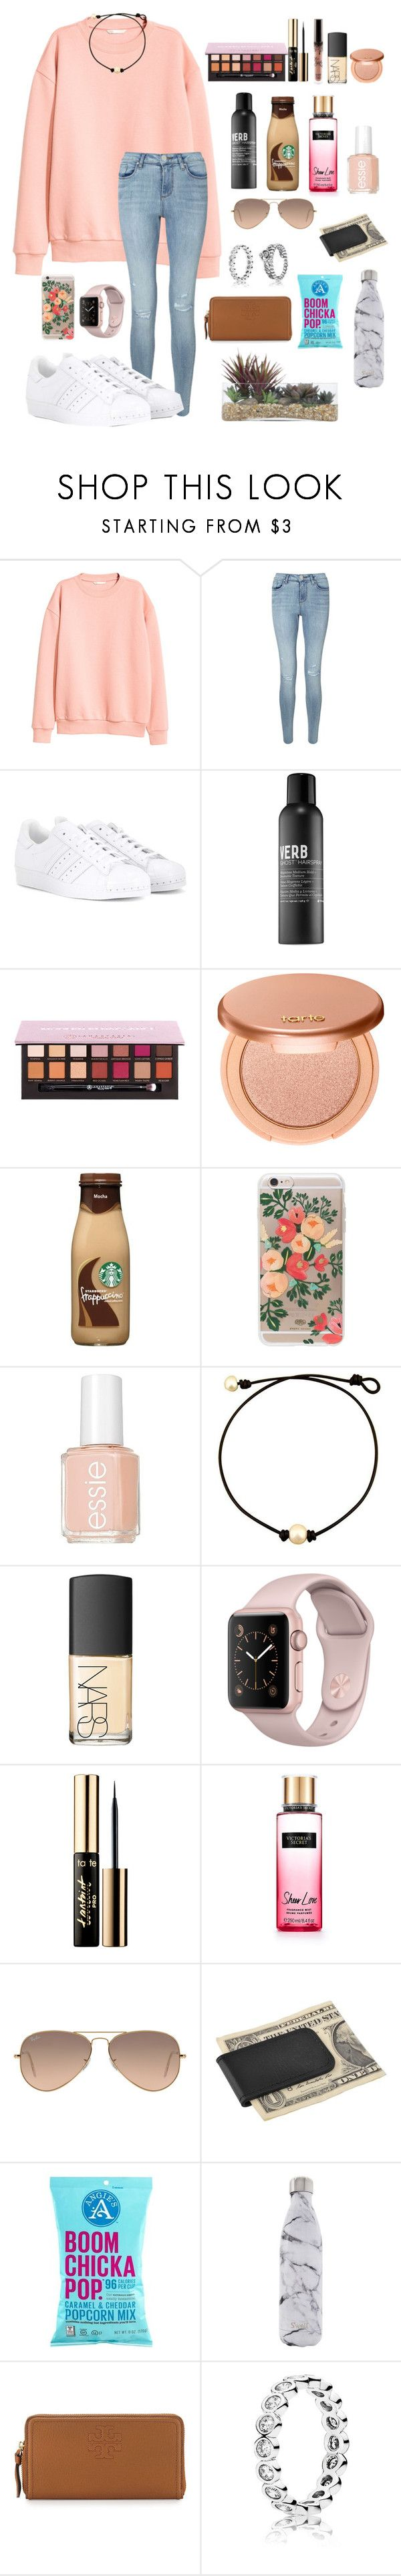 """Rtd! Important announcement:)"" by laurenek006 ❤ liked on Polyvore featuring H&M, Miss Selfridge, adidas, Verb, Anastasia Beverly Hills, tarte, Rifle Paper Co, Essie, NARS Cosmetics and Victoria's Secret"